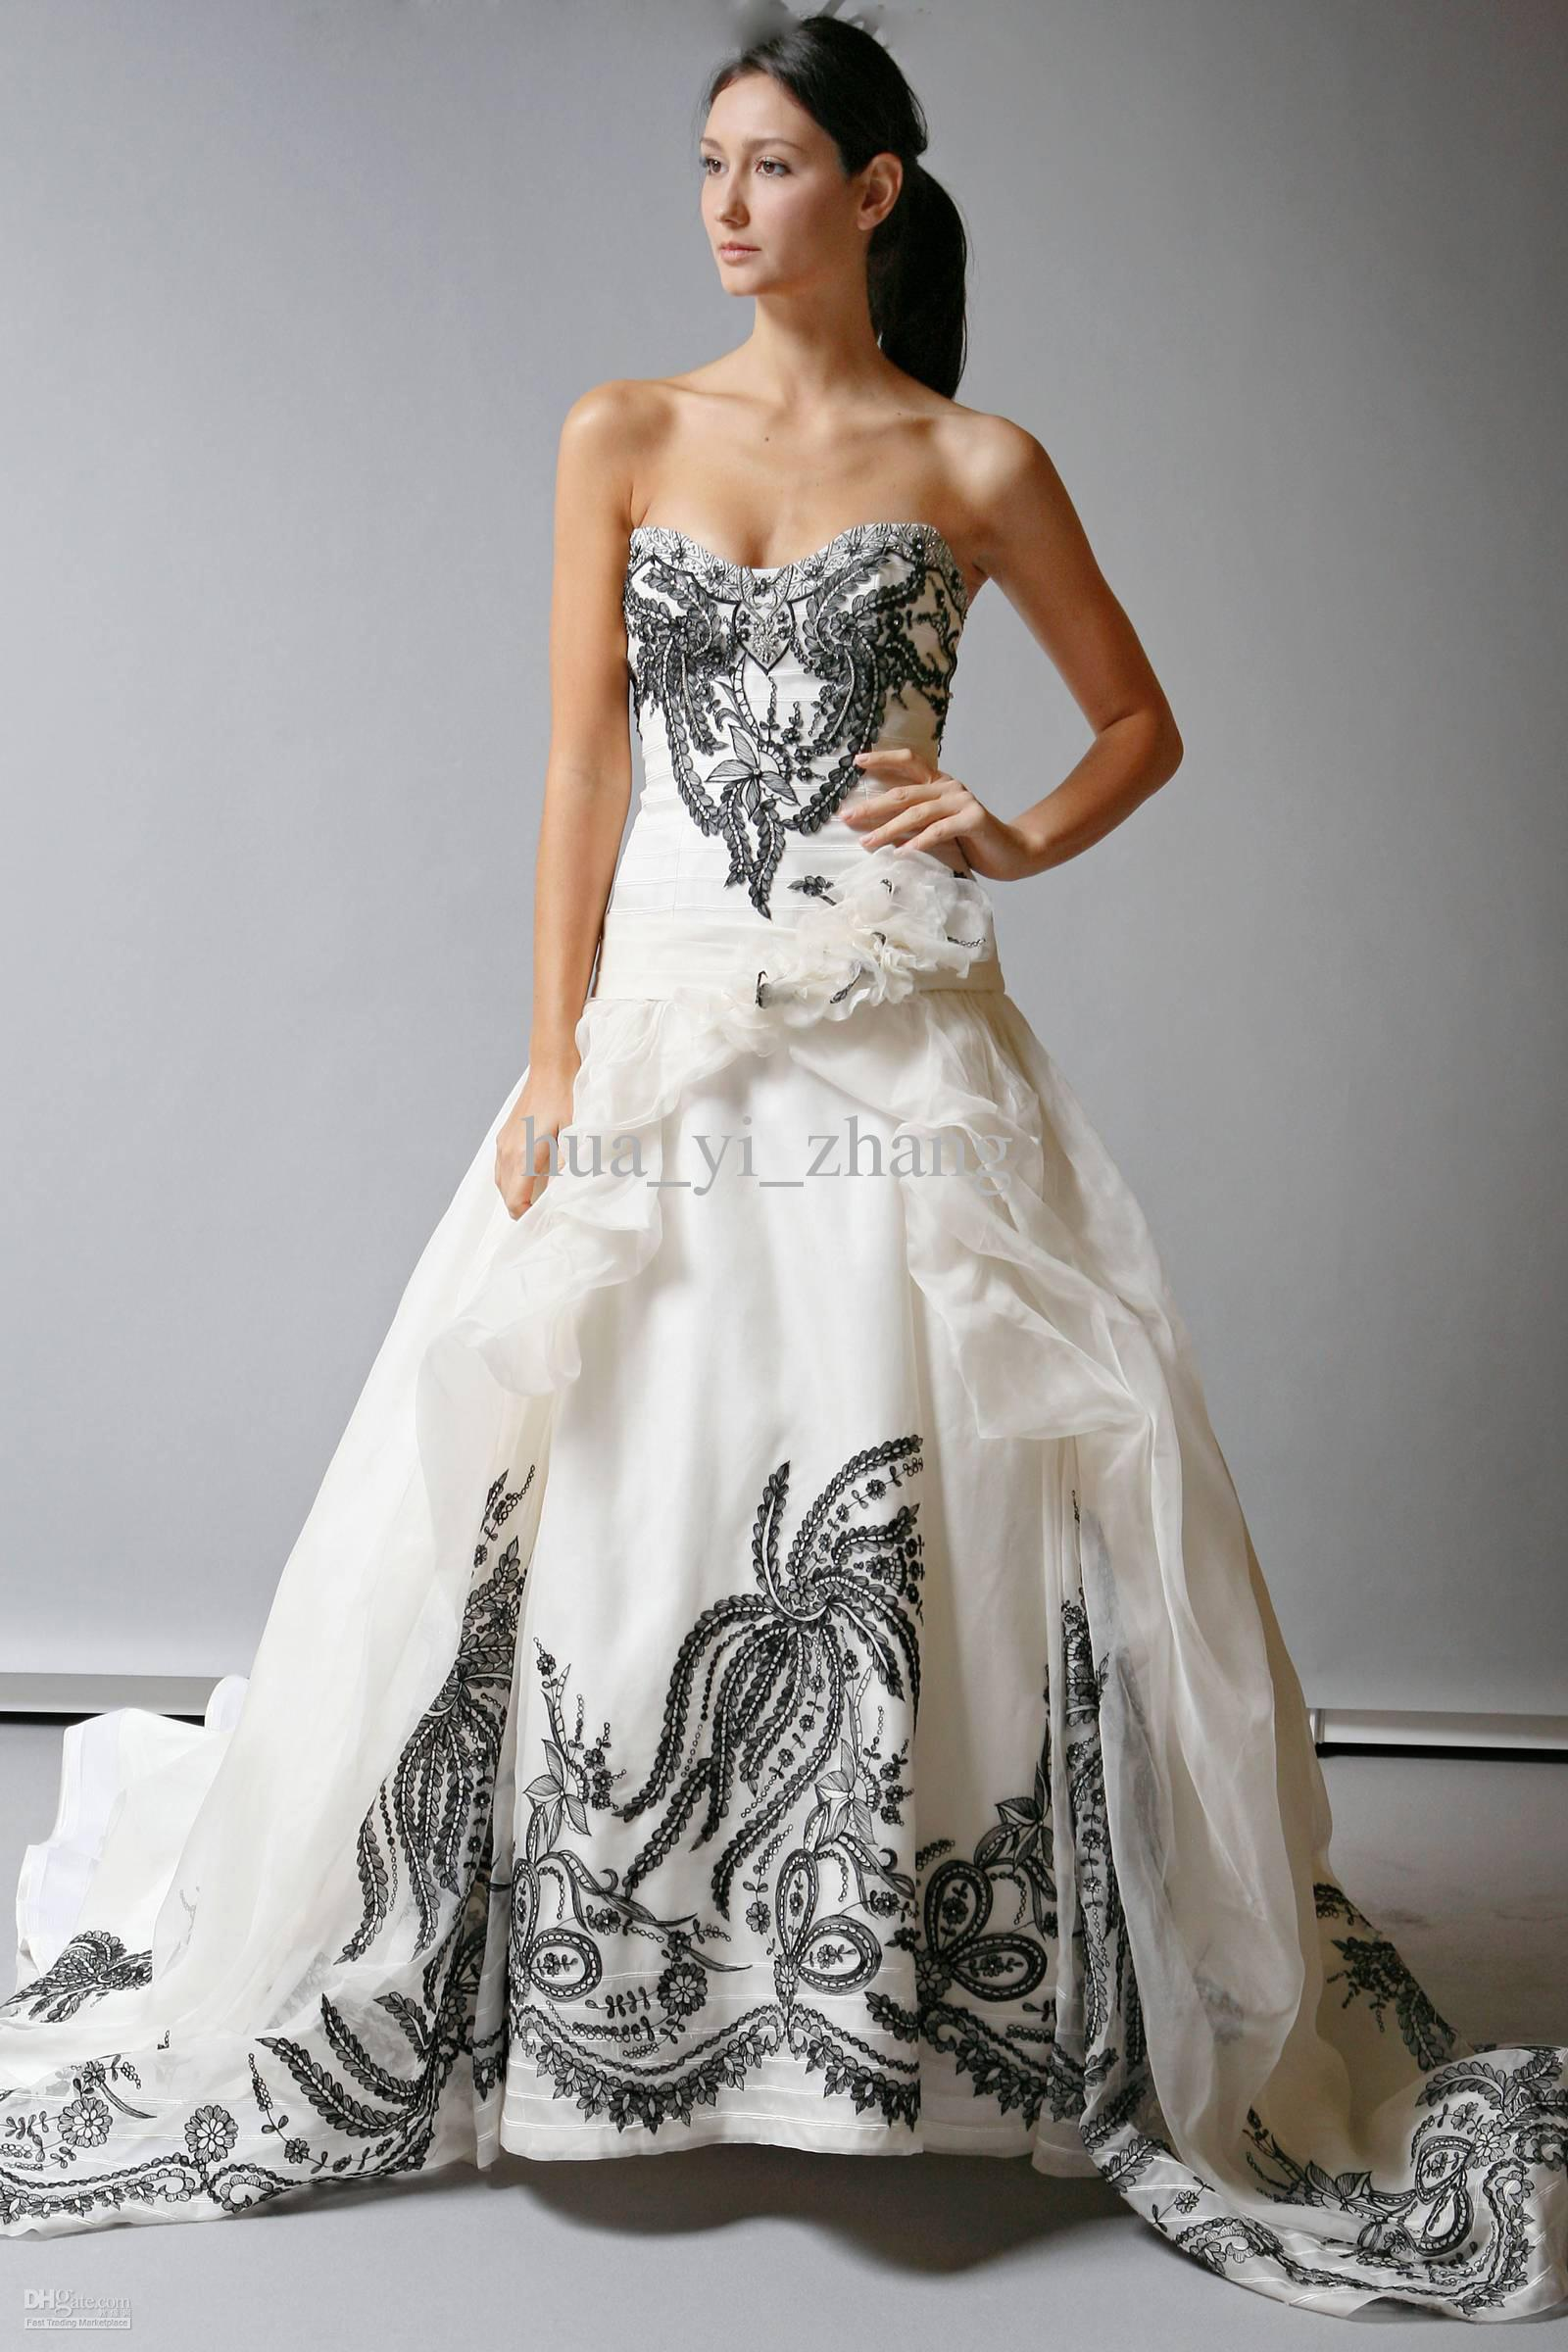 Wedding Dresses Black And White Store - Flower Girl Dresses